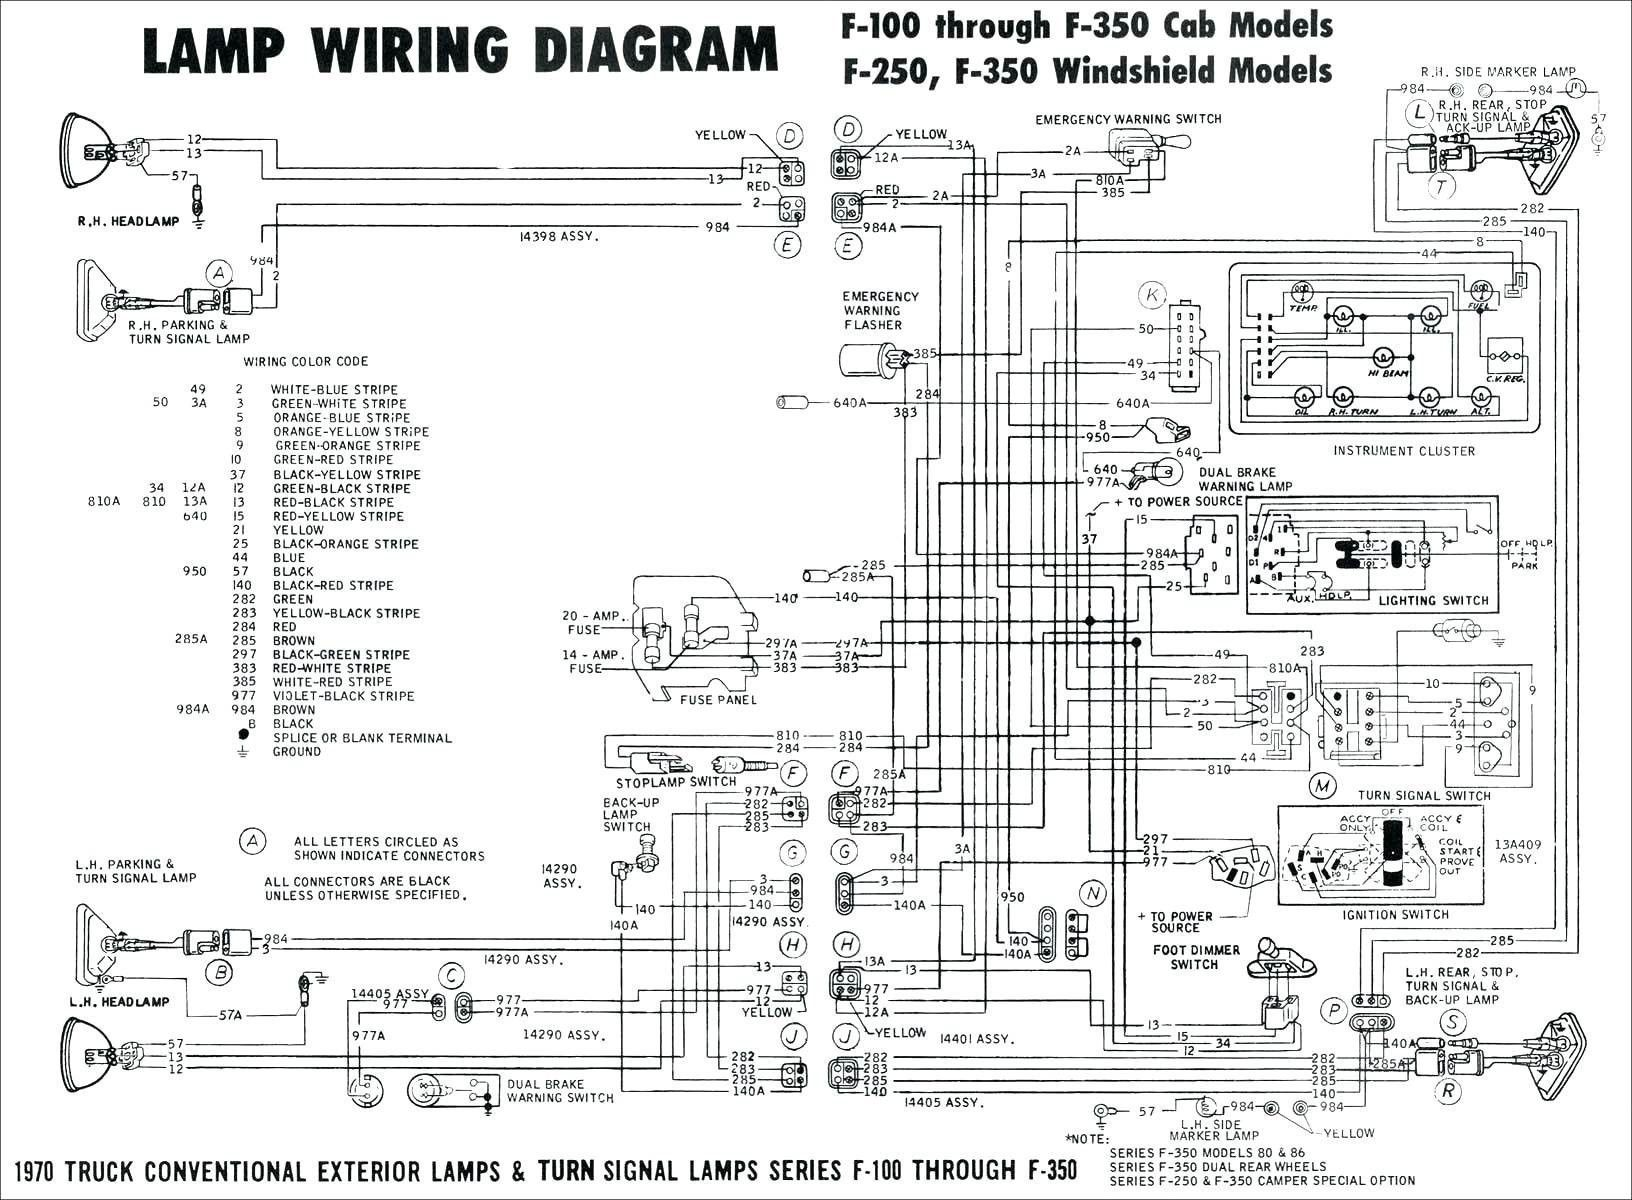 Automotive Dimmer Switch Wiring Diagram from i.pinimg.com